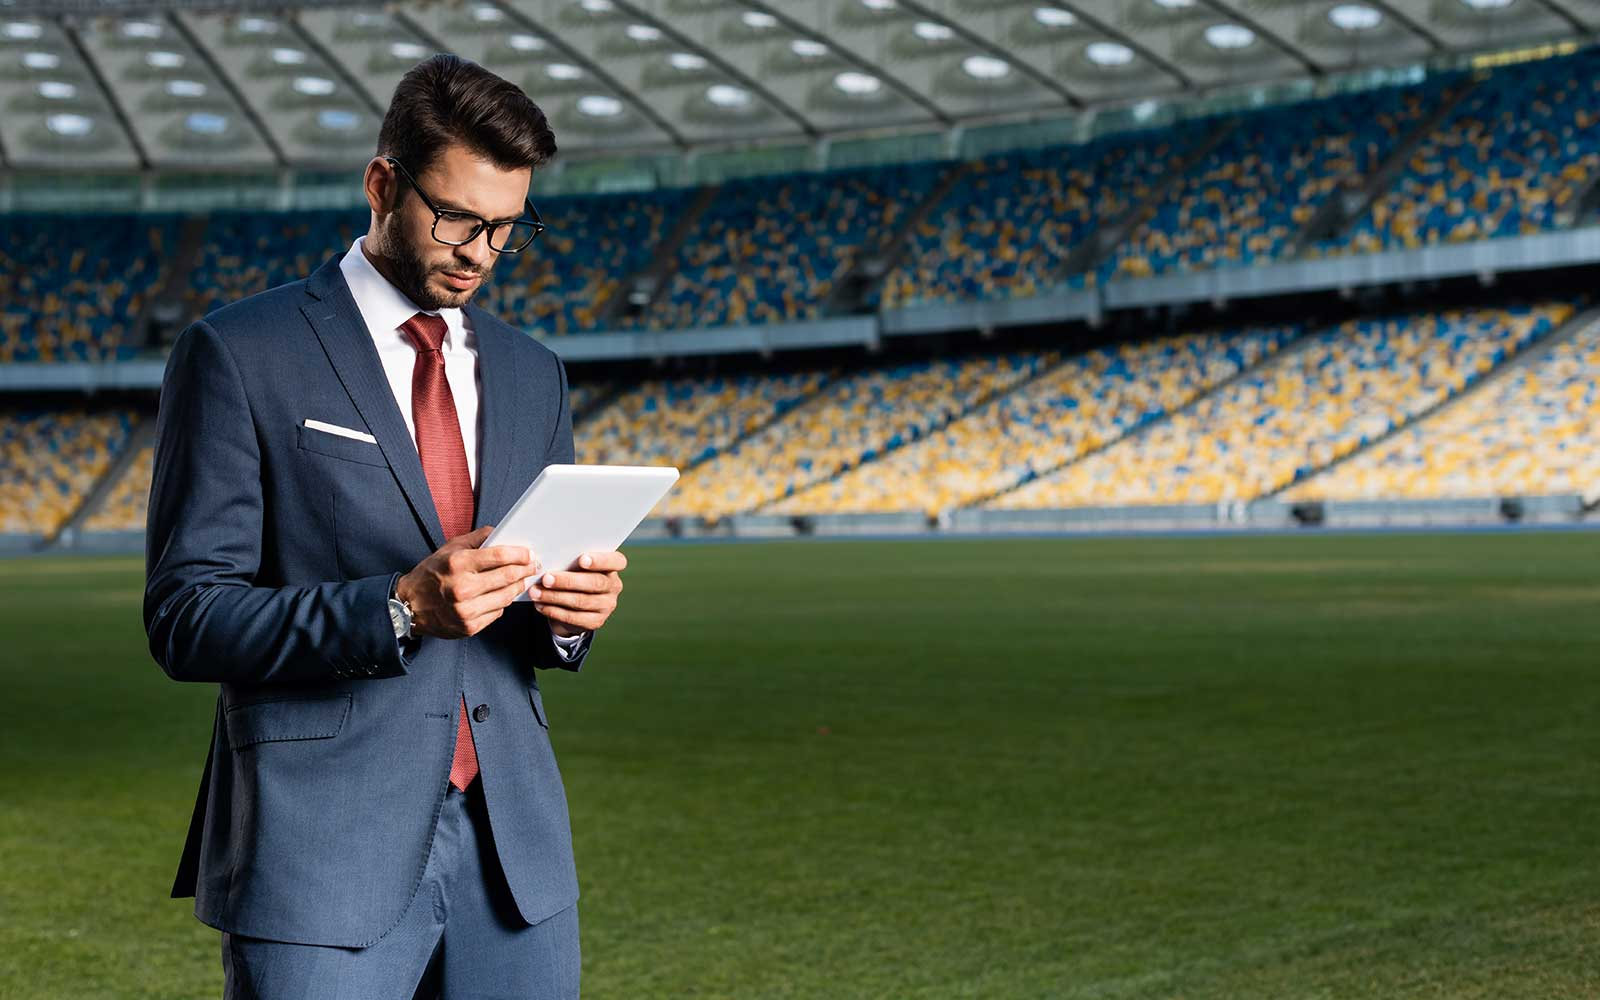 Sport administrator on the field looking at his tablet